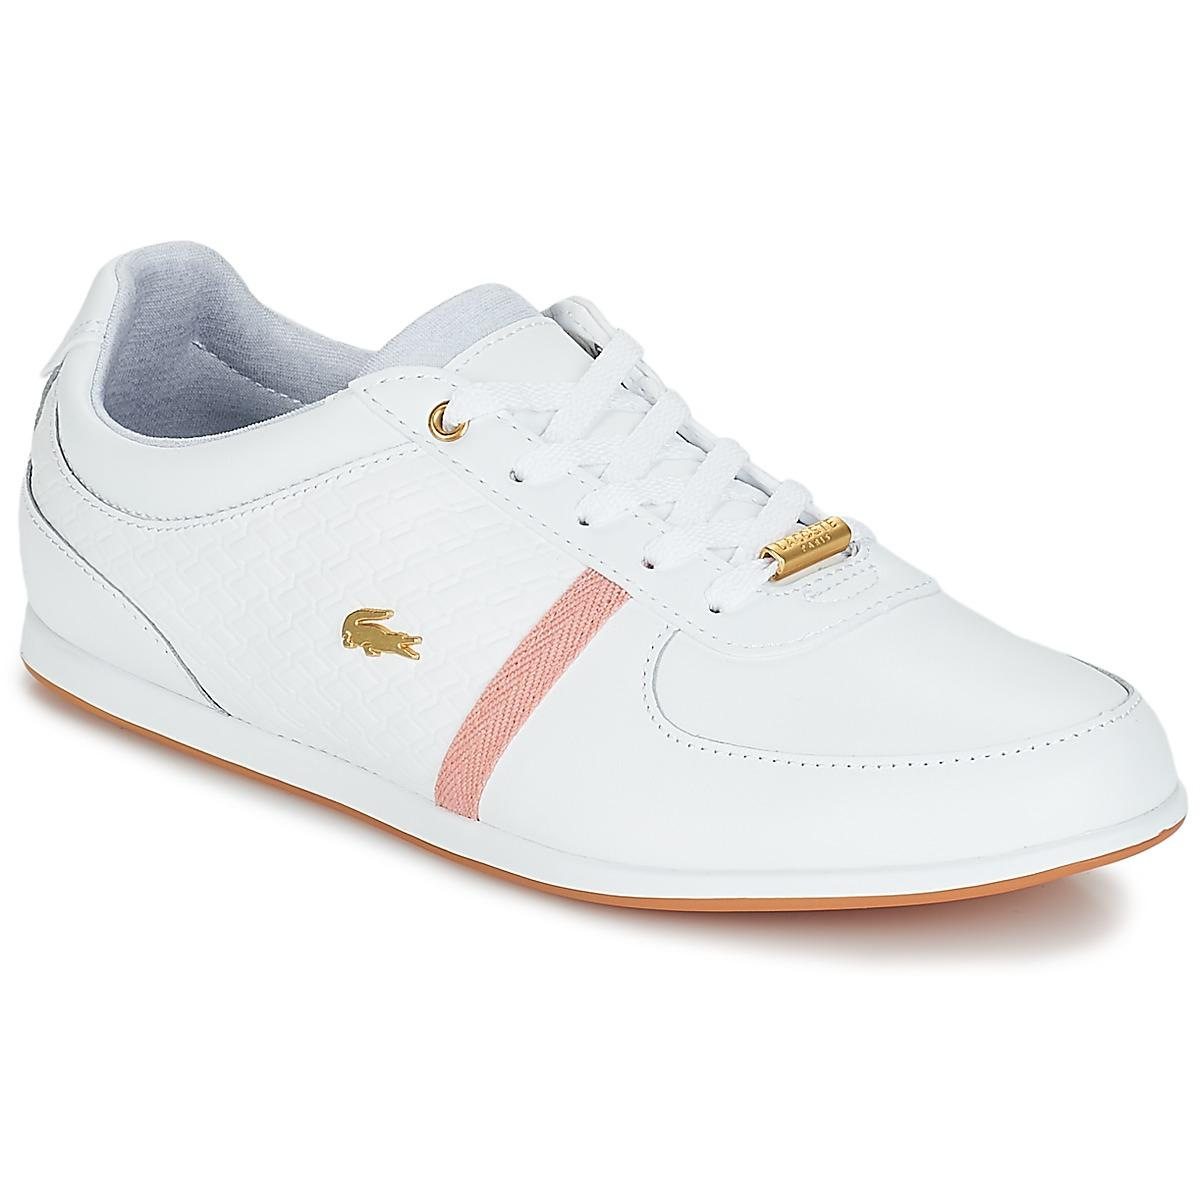 b01cbc8be897 Lacoste Rey Sport 318 1 Women s Shoes (trainers) In White in White ...